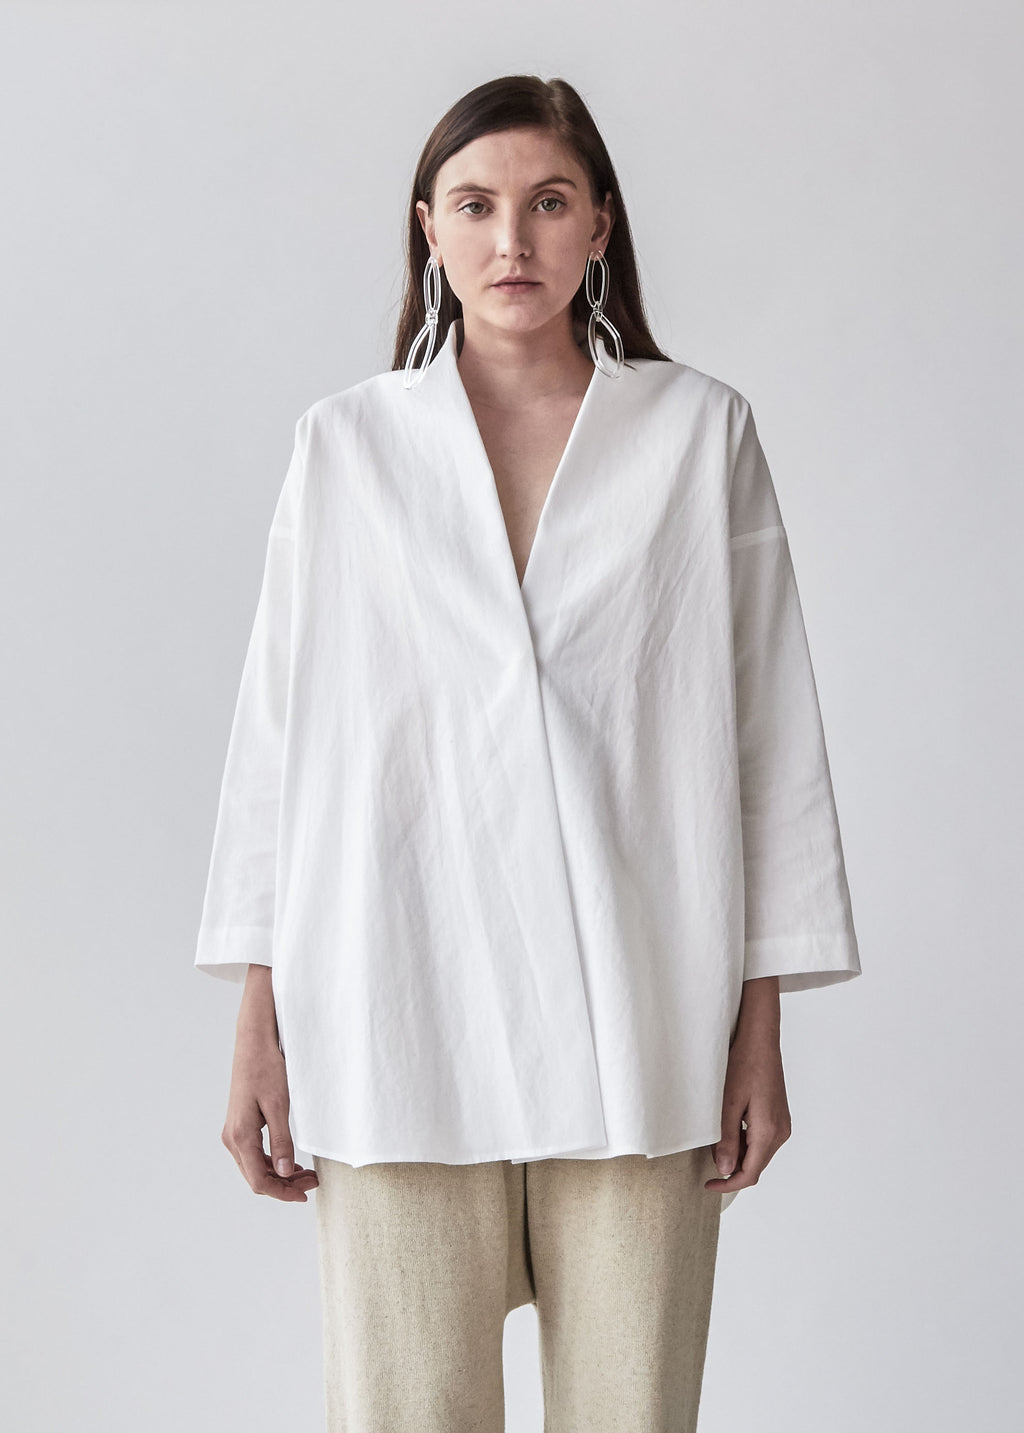 Shawl Shirt in Shoji - SOLD OUT